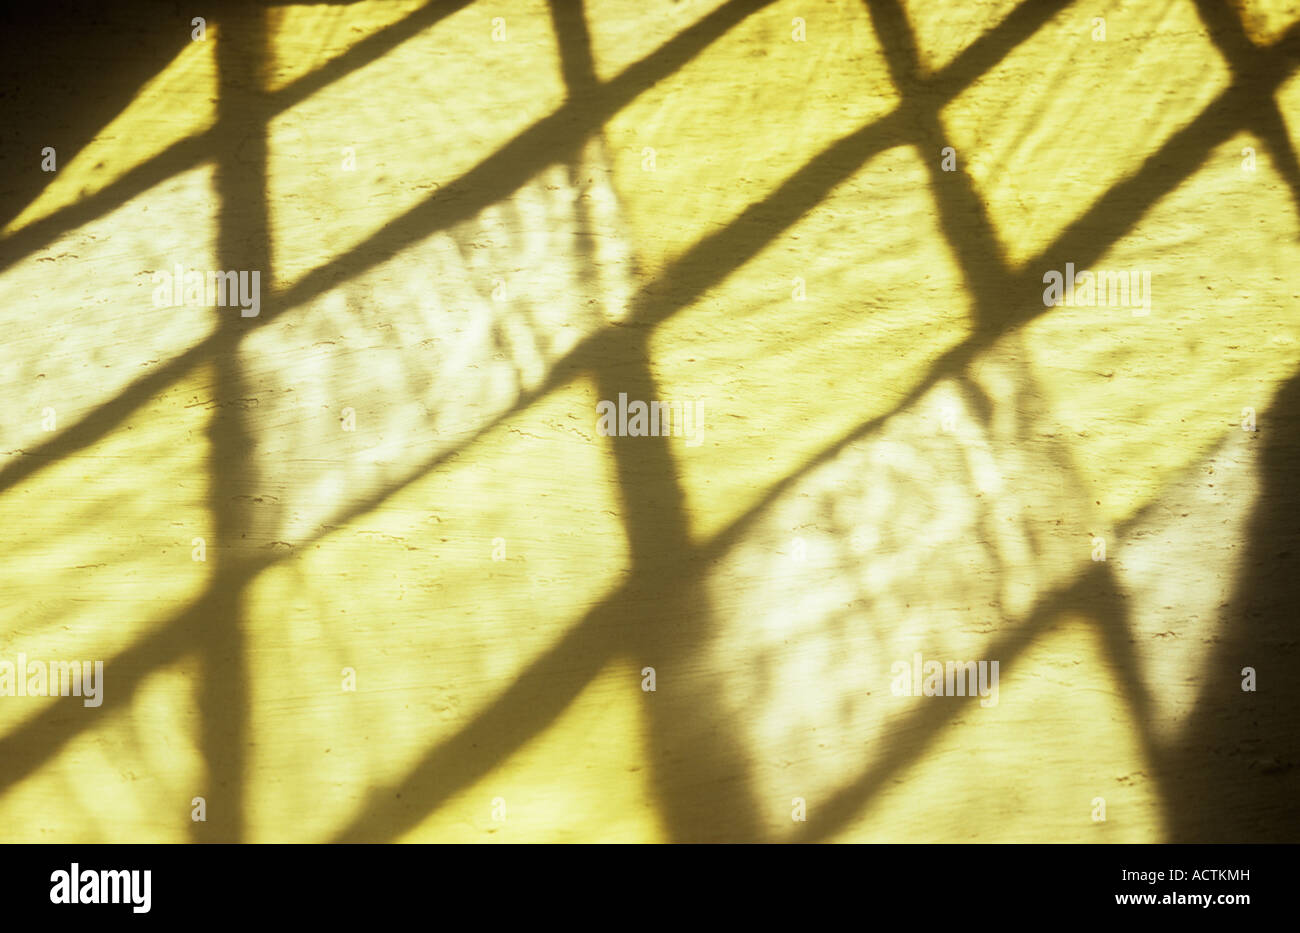 Projection of clear small handmade square or diamond leaded panes of window glass onto cream painted rough wall - Stock Image